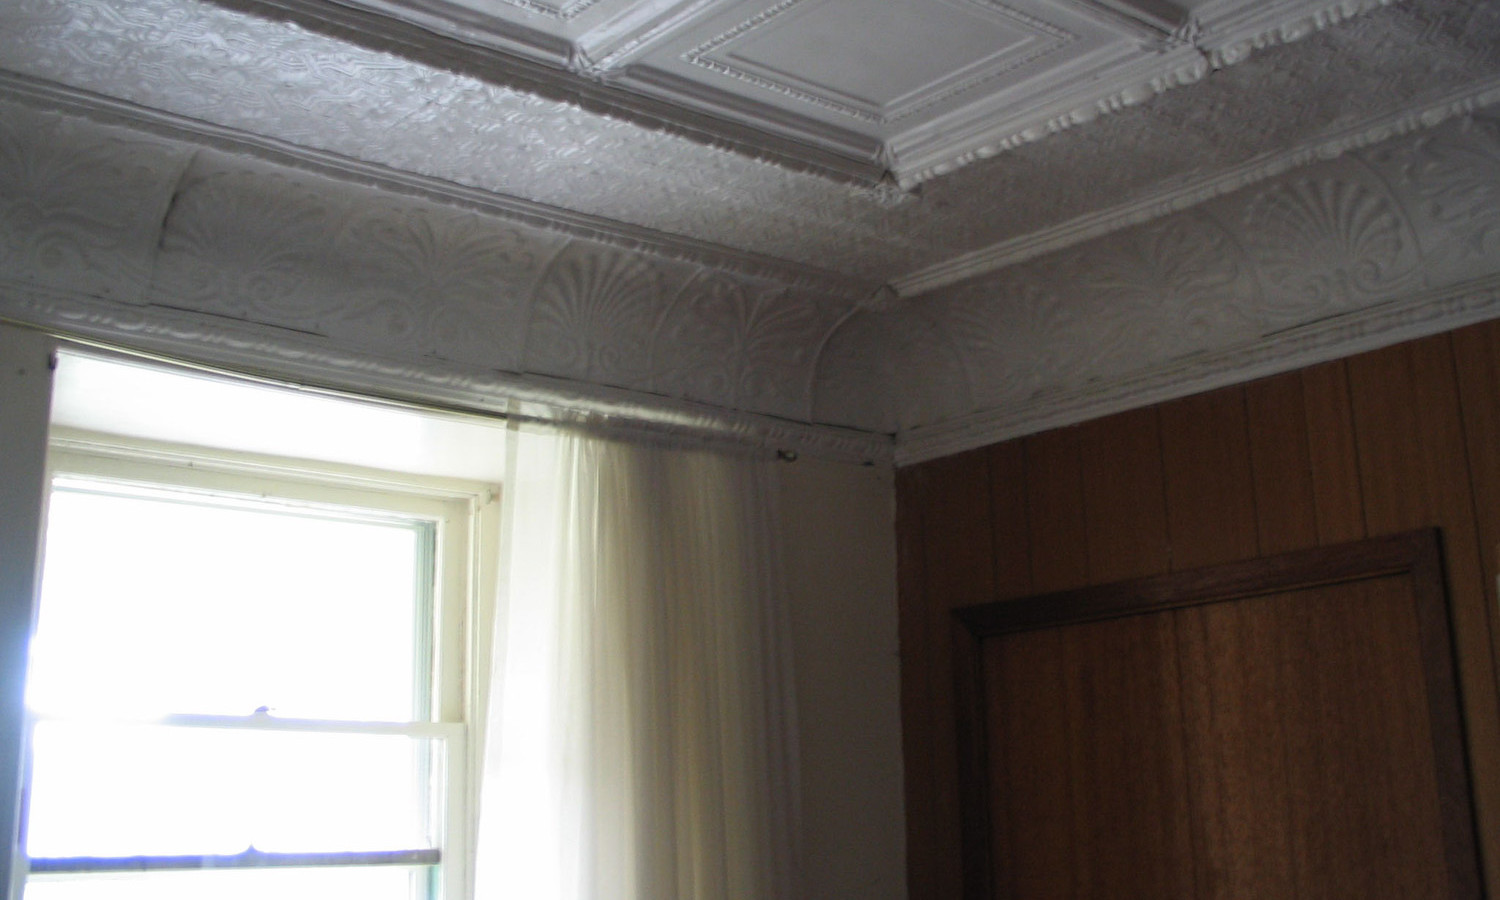 Interior Detail Image Showing Decorative Ceiling Work